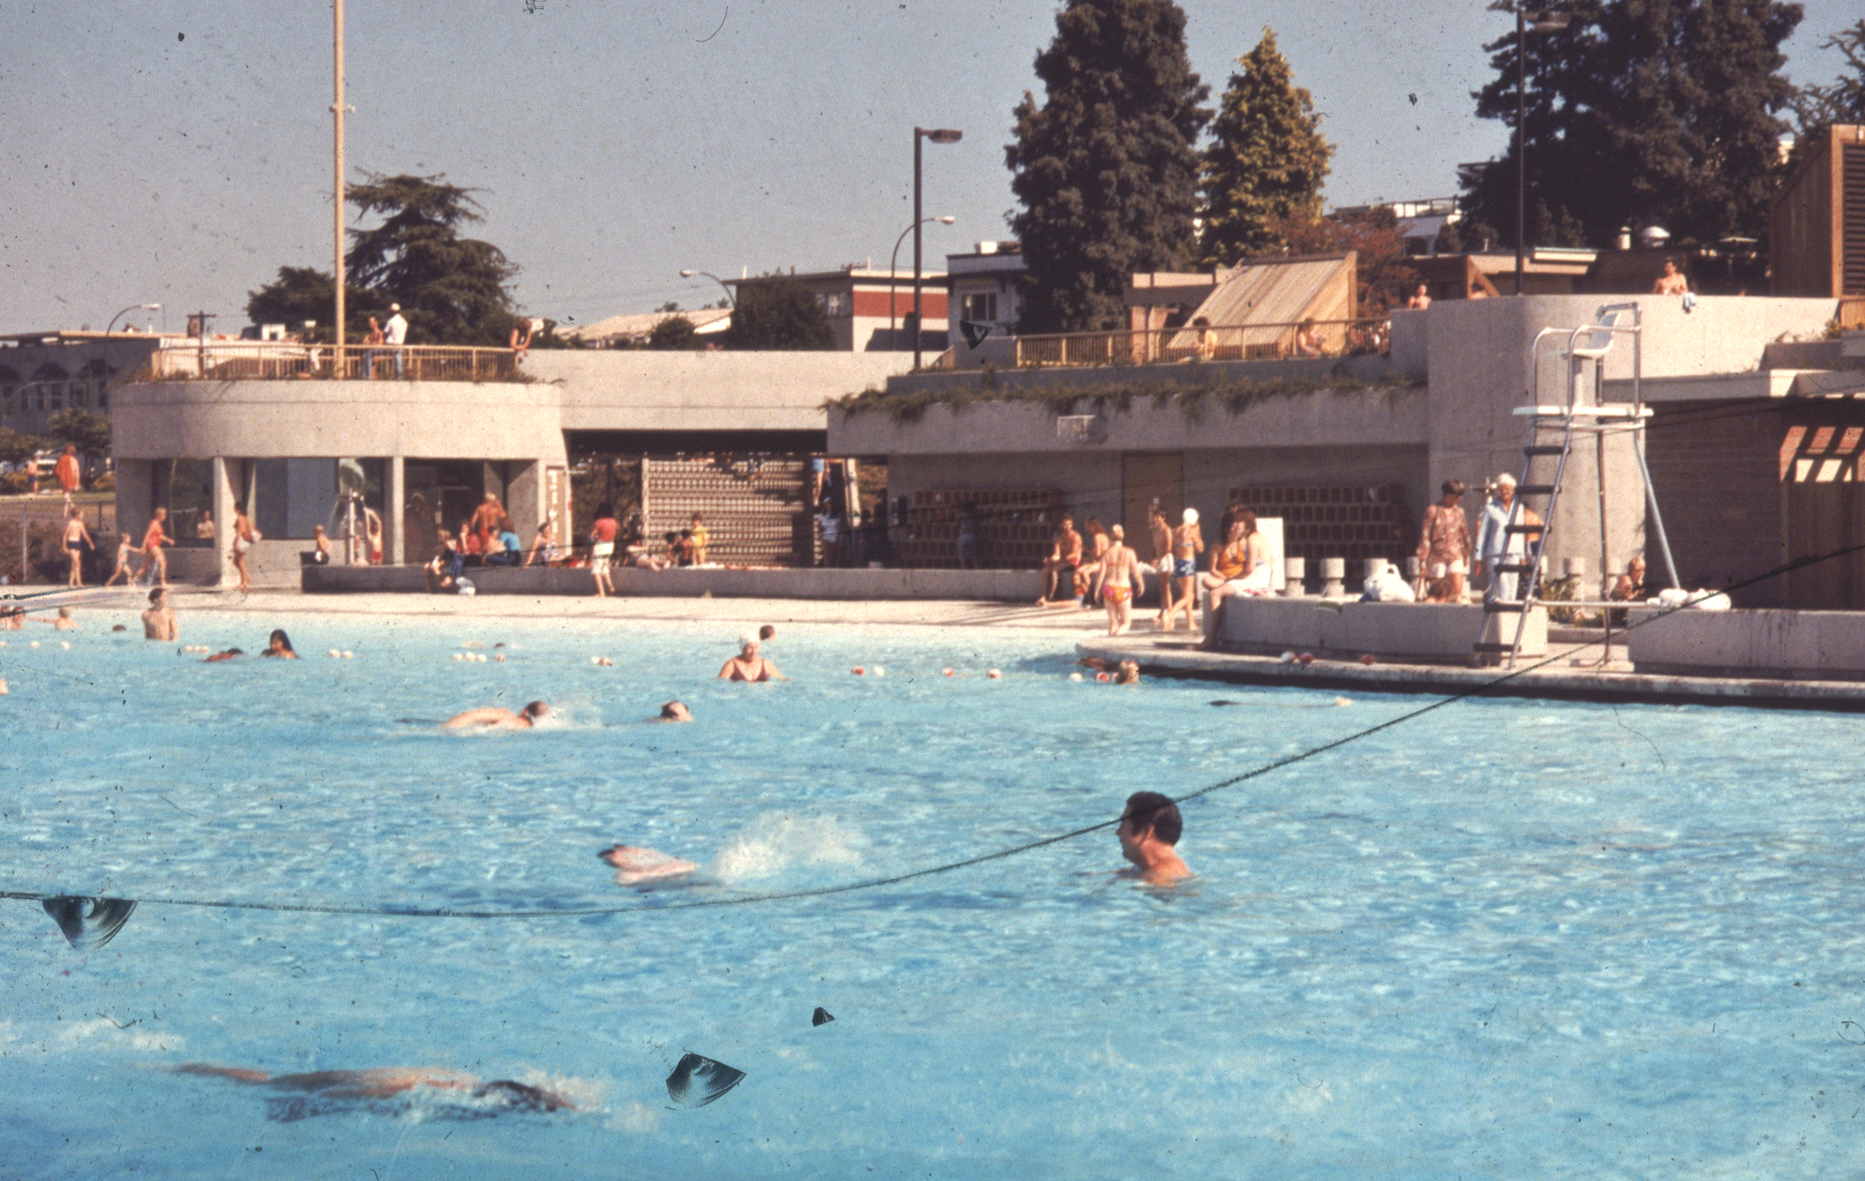 Kits Pool during its first season after the renovations in 1978.   Photo courtesy of Bingham + Hill Architects.